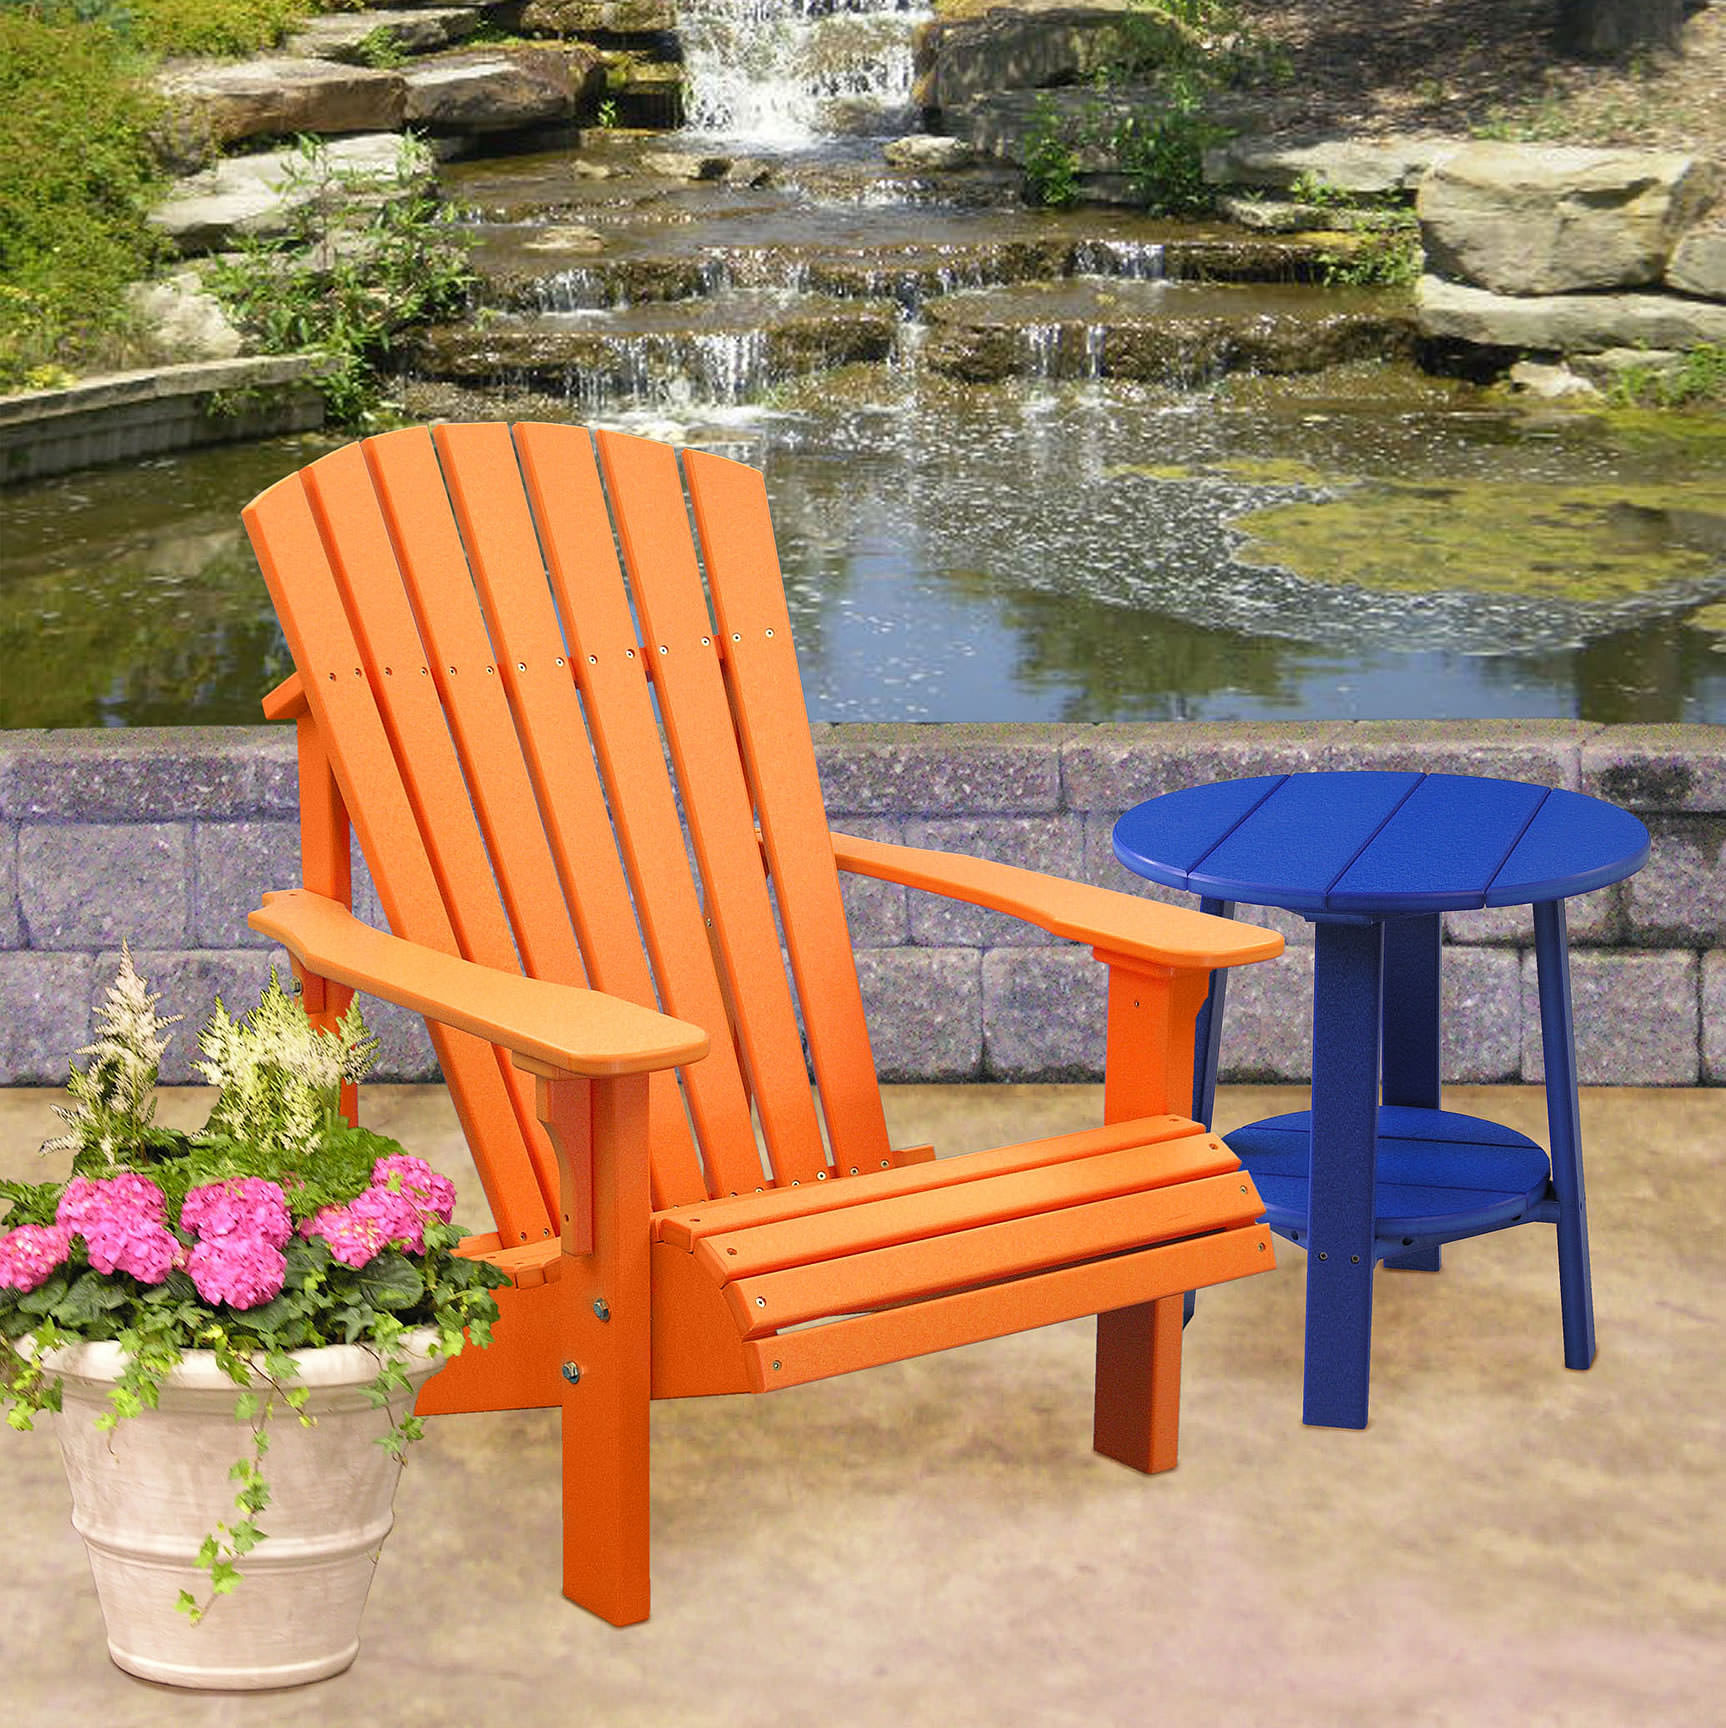 Luxcraft / Crestville® Deluxe Adirondack Chair in Solid Tropical Colors